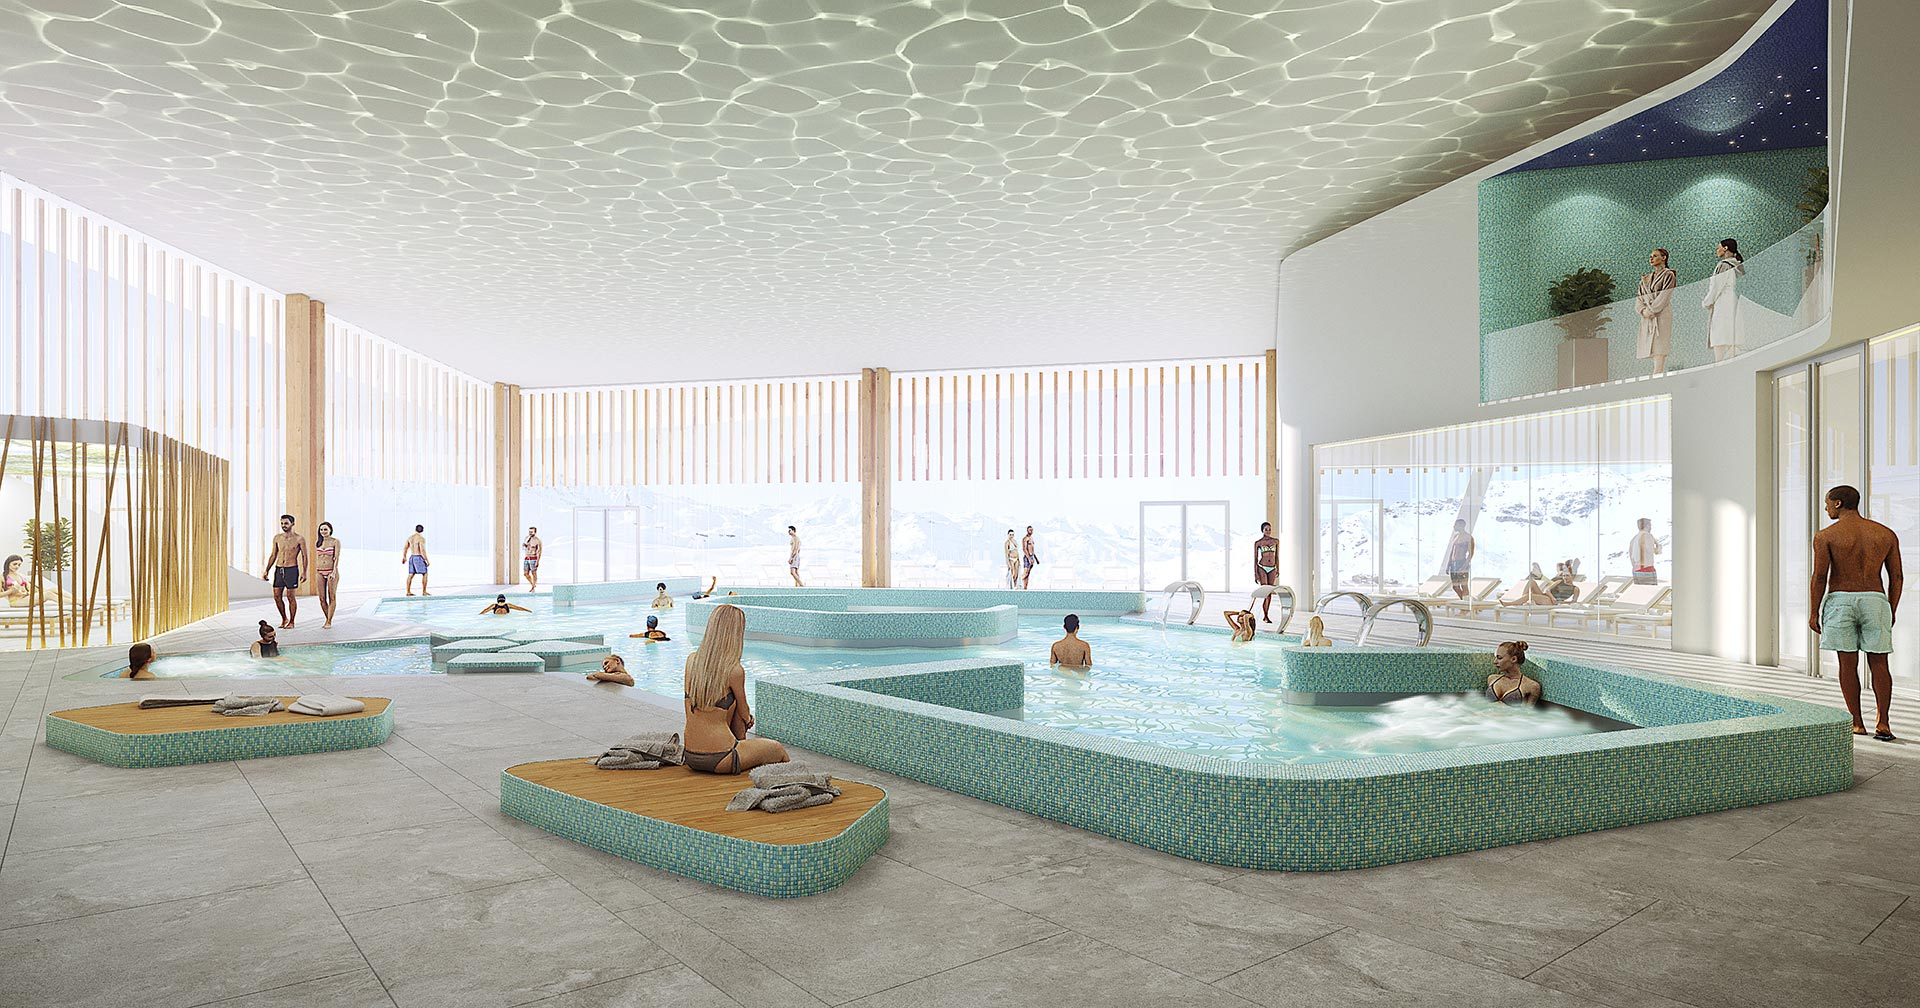 3D perspective of an interior pool for a visualization contest